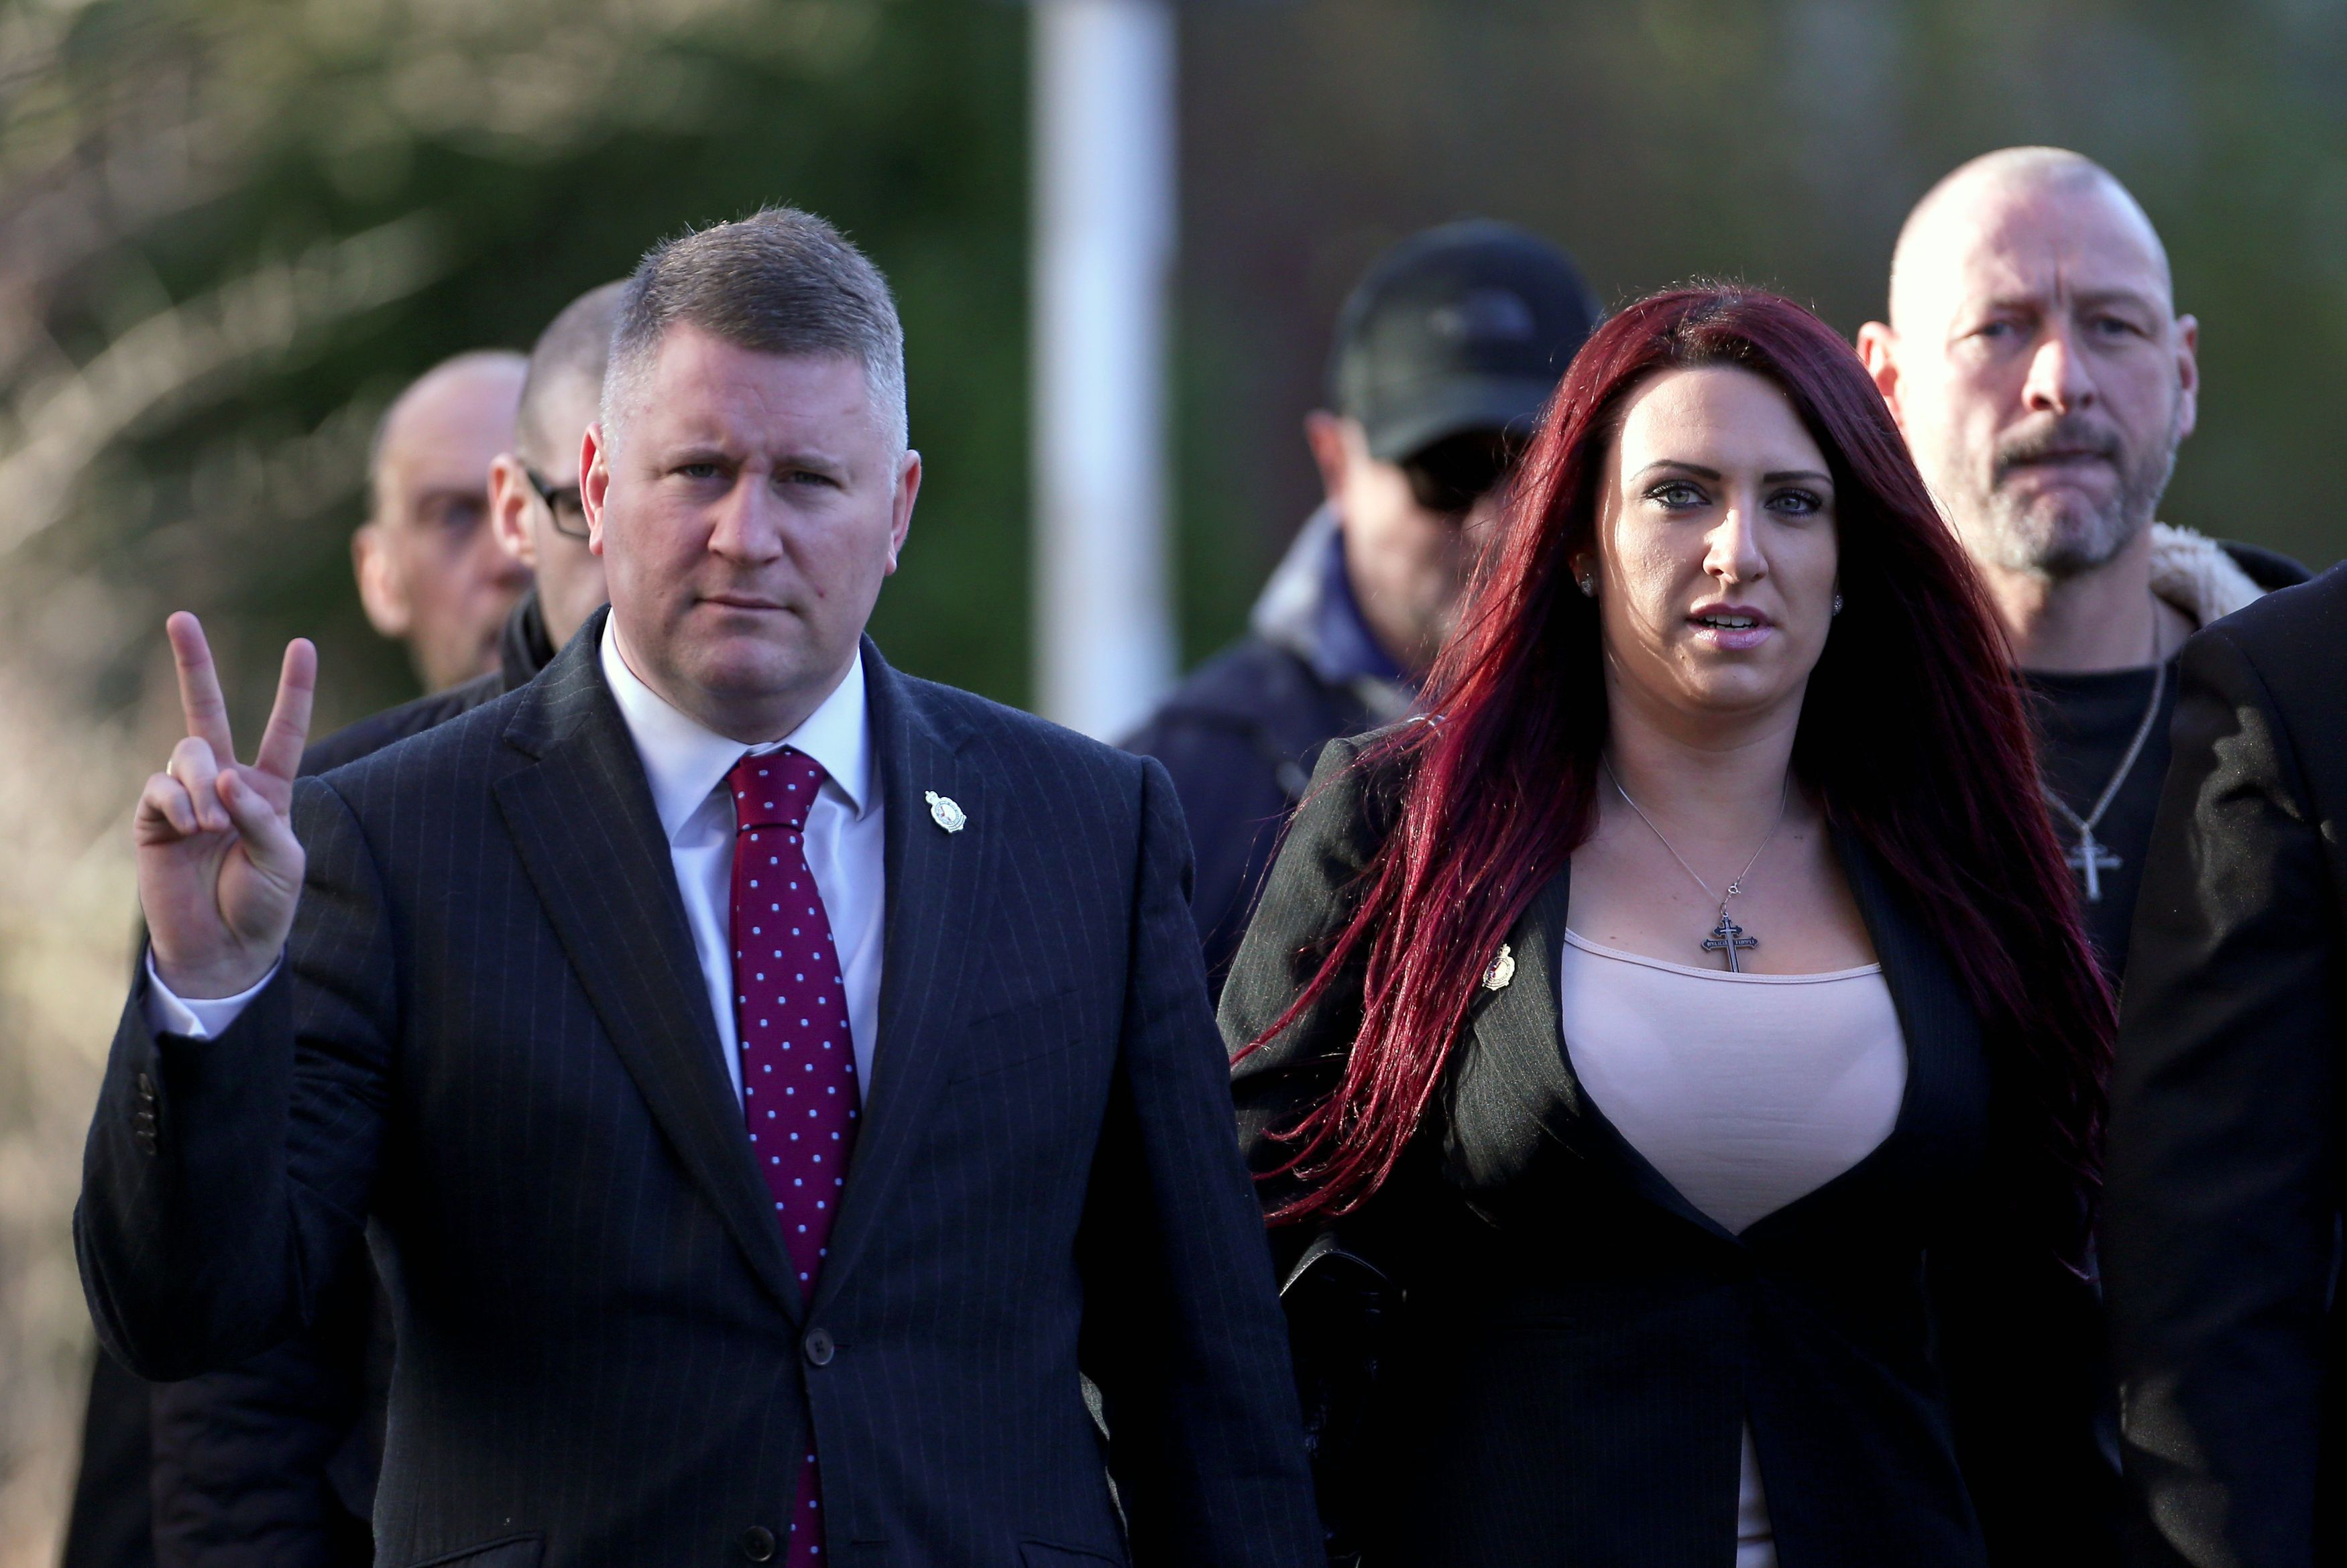 Courtroom Descends Into Chaos As Britain First Leaders Are Jailed Over Hate